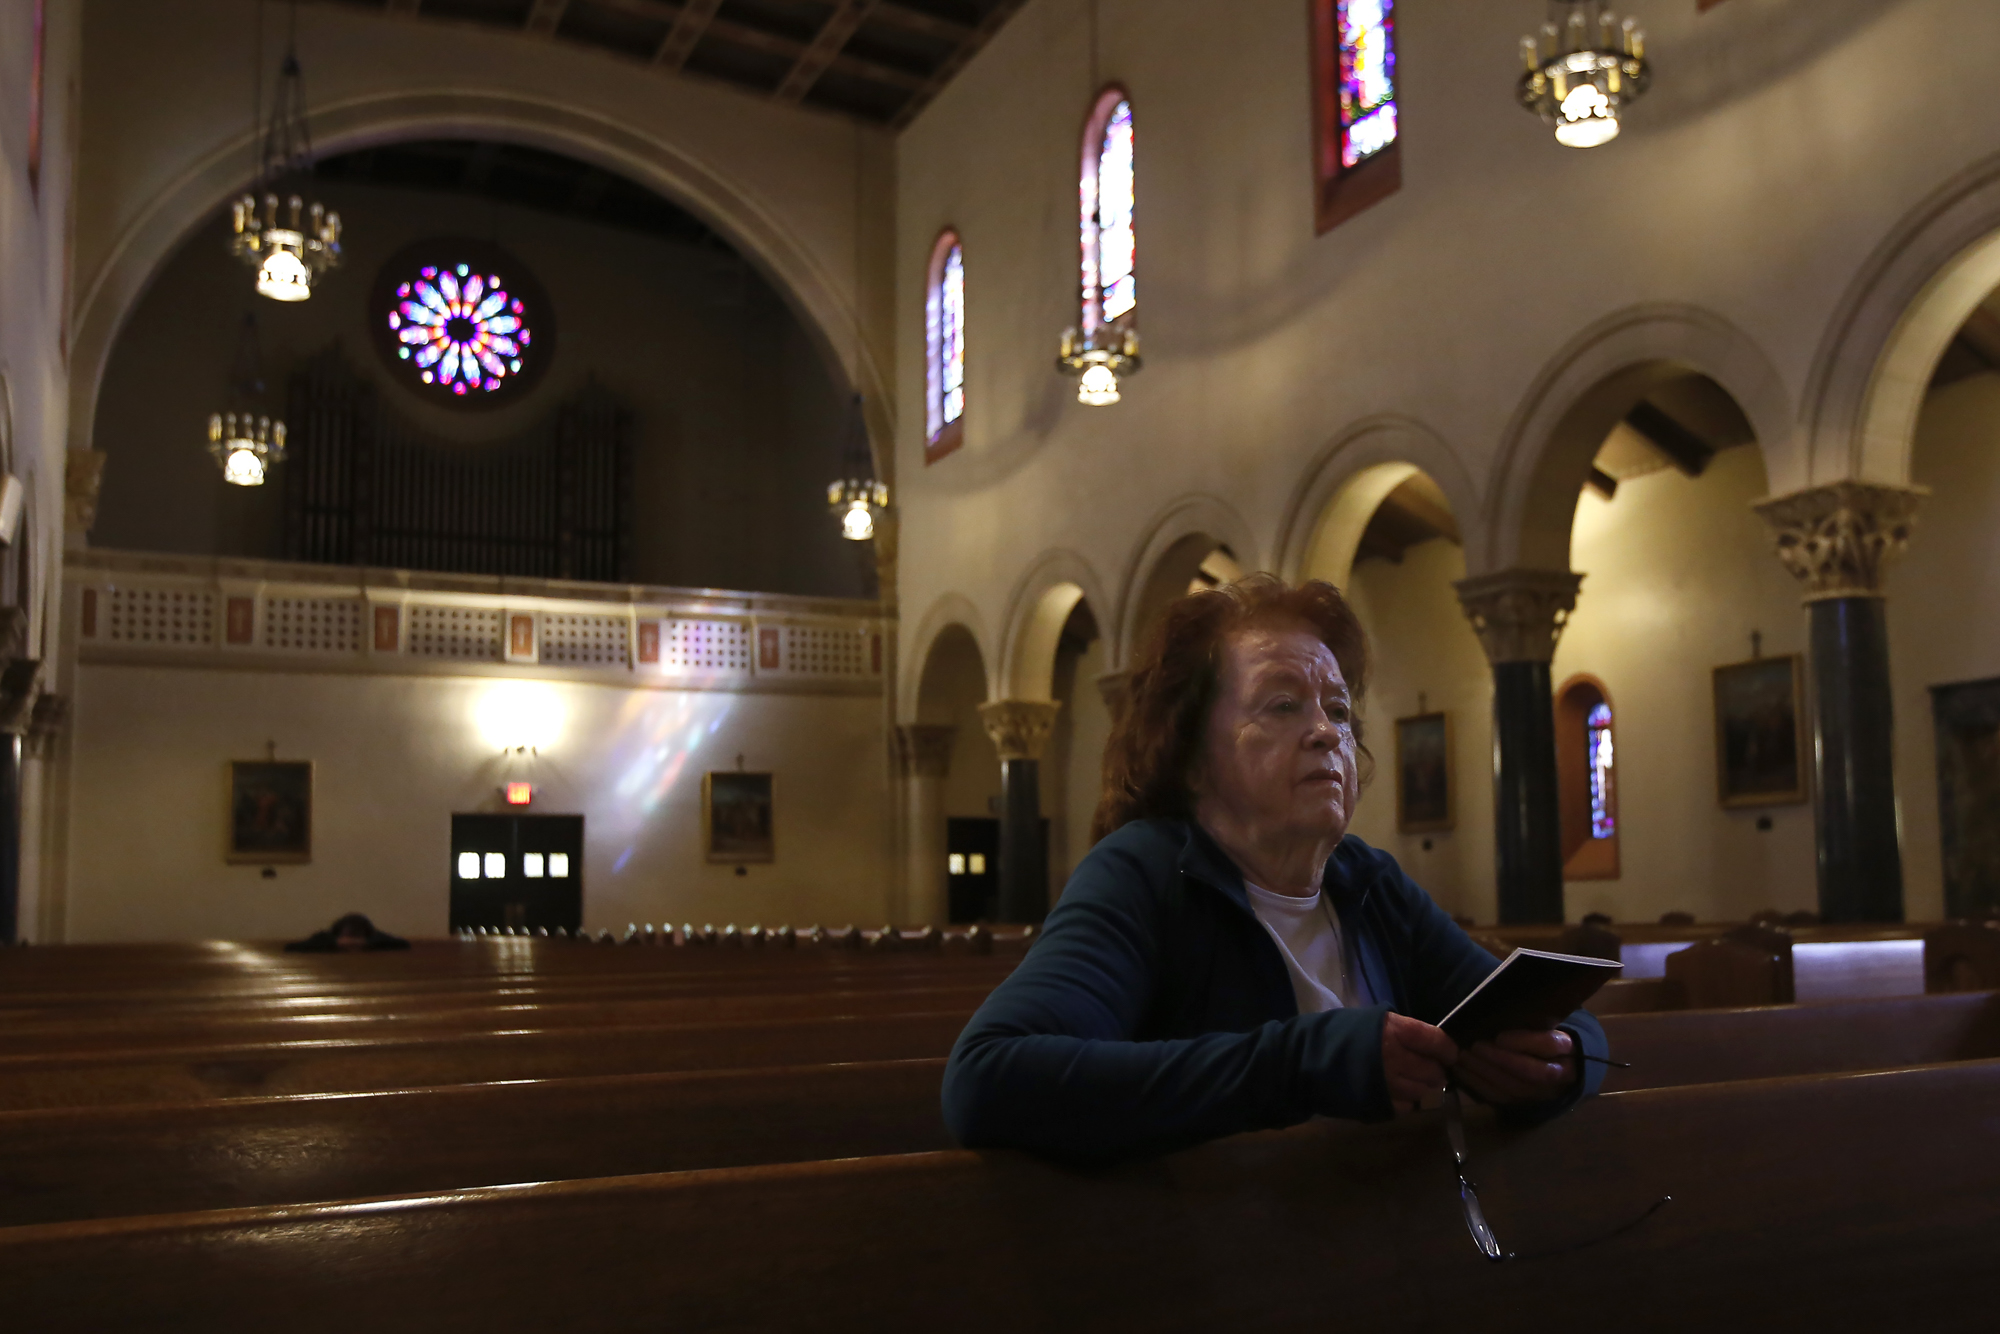 "Joan Knego observes Good Friday in prayer at Sacred Heart Catholic Church in Sacramento, Calif., Friday, April 10, 2020. Due to the coronavirus and California's ""stay-at-home"" order, churches did not hold public Good Friday services. Some provided video services while others opened their doors for personal prayer. Photo by Rich Pedroncelli, AP Photo"